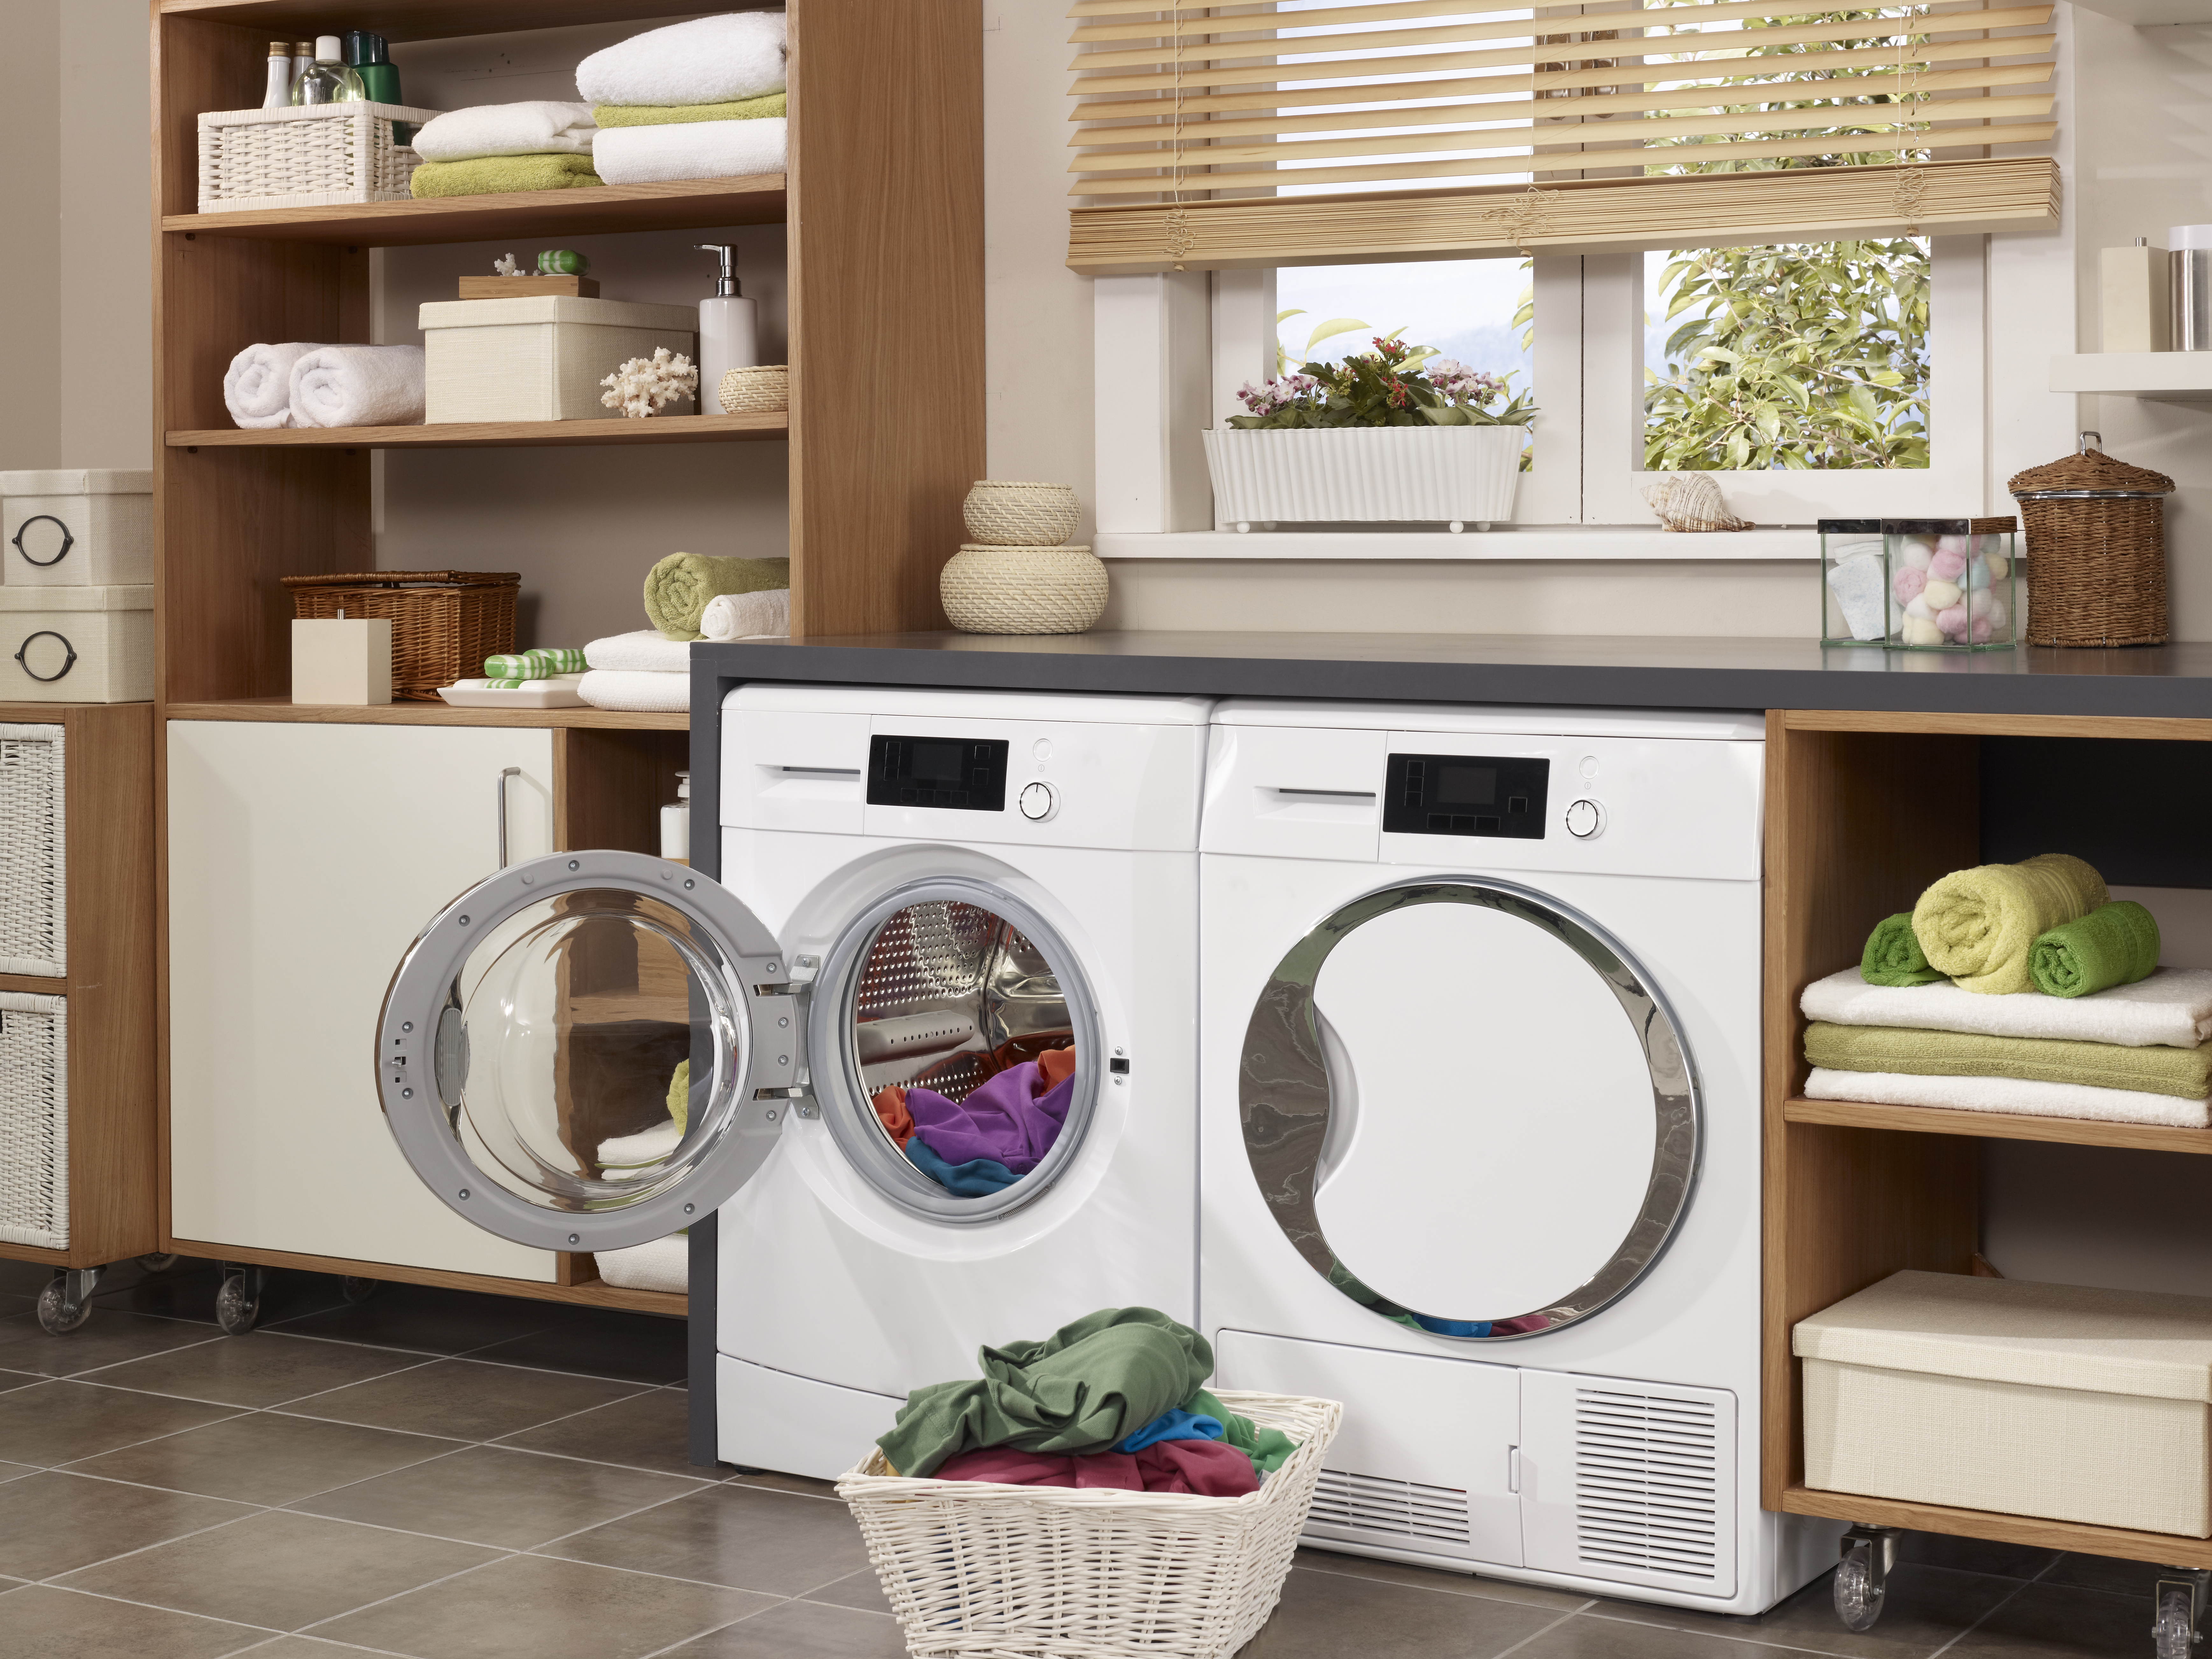 Troubleshooting: Dryer Drum Won't Turn With Heavy Load